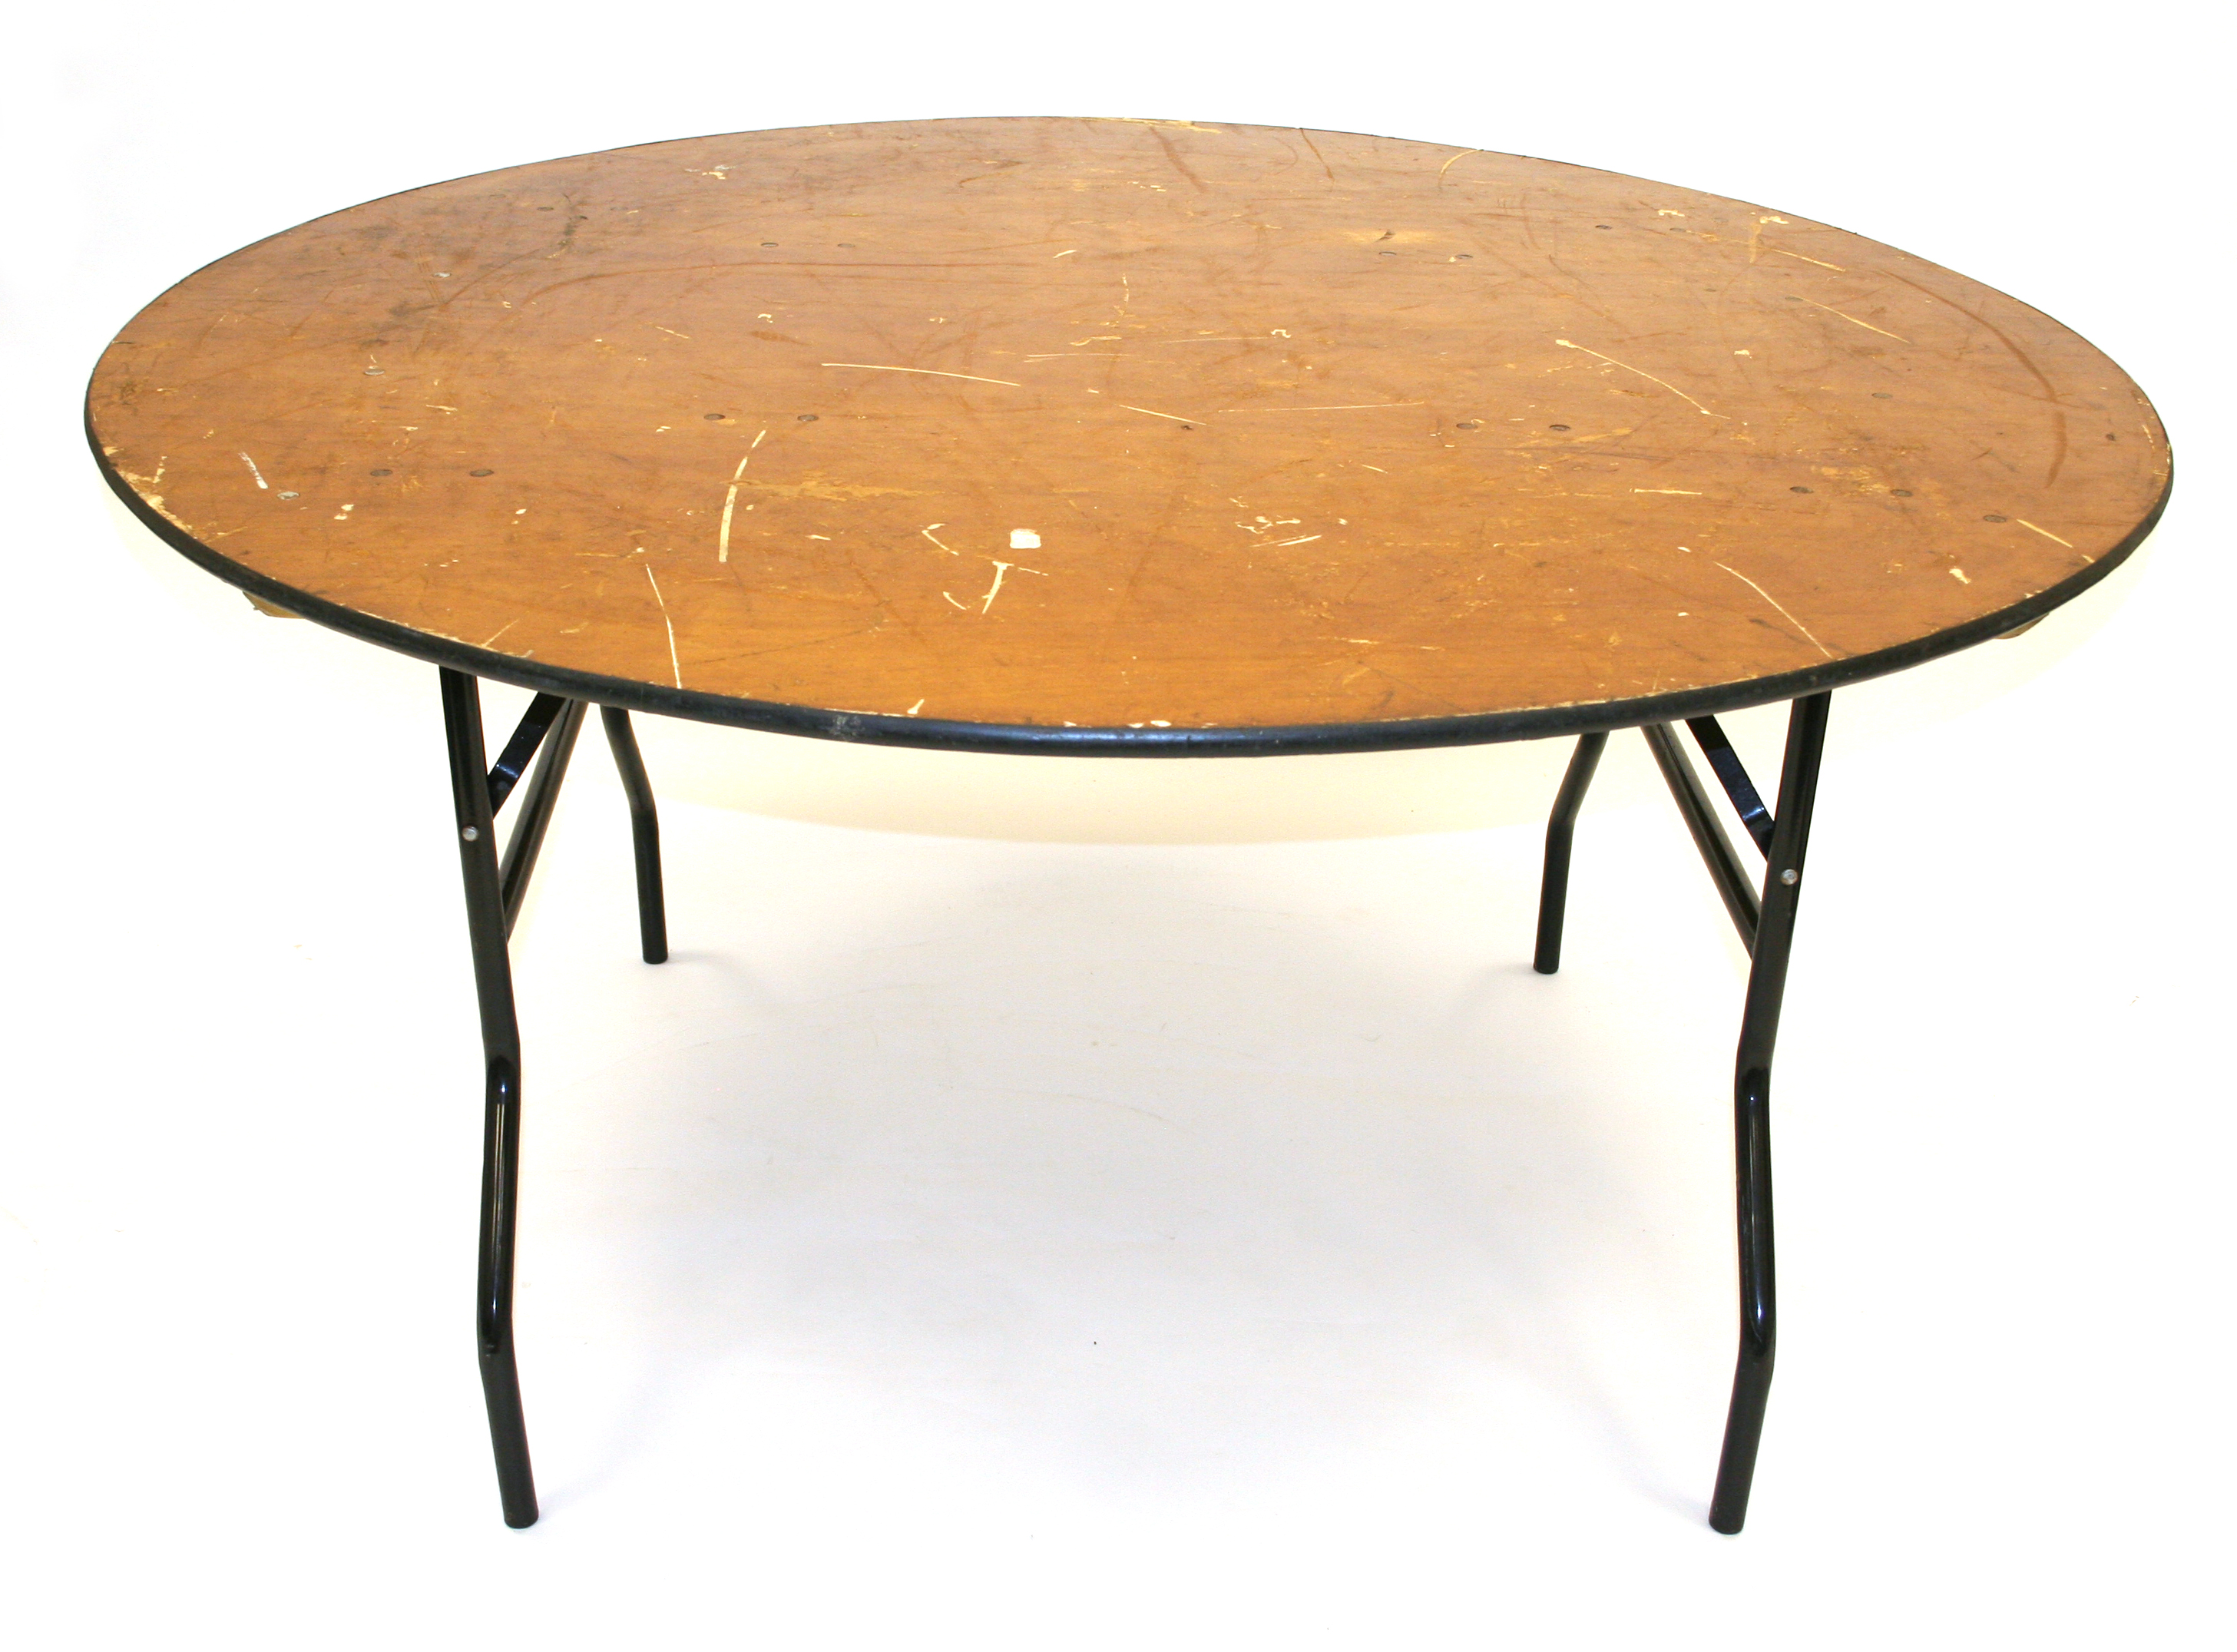 6' Diameter varnished plywood top round tables with steel folding legs. - BE Event Hire